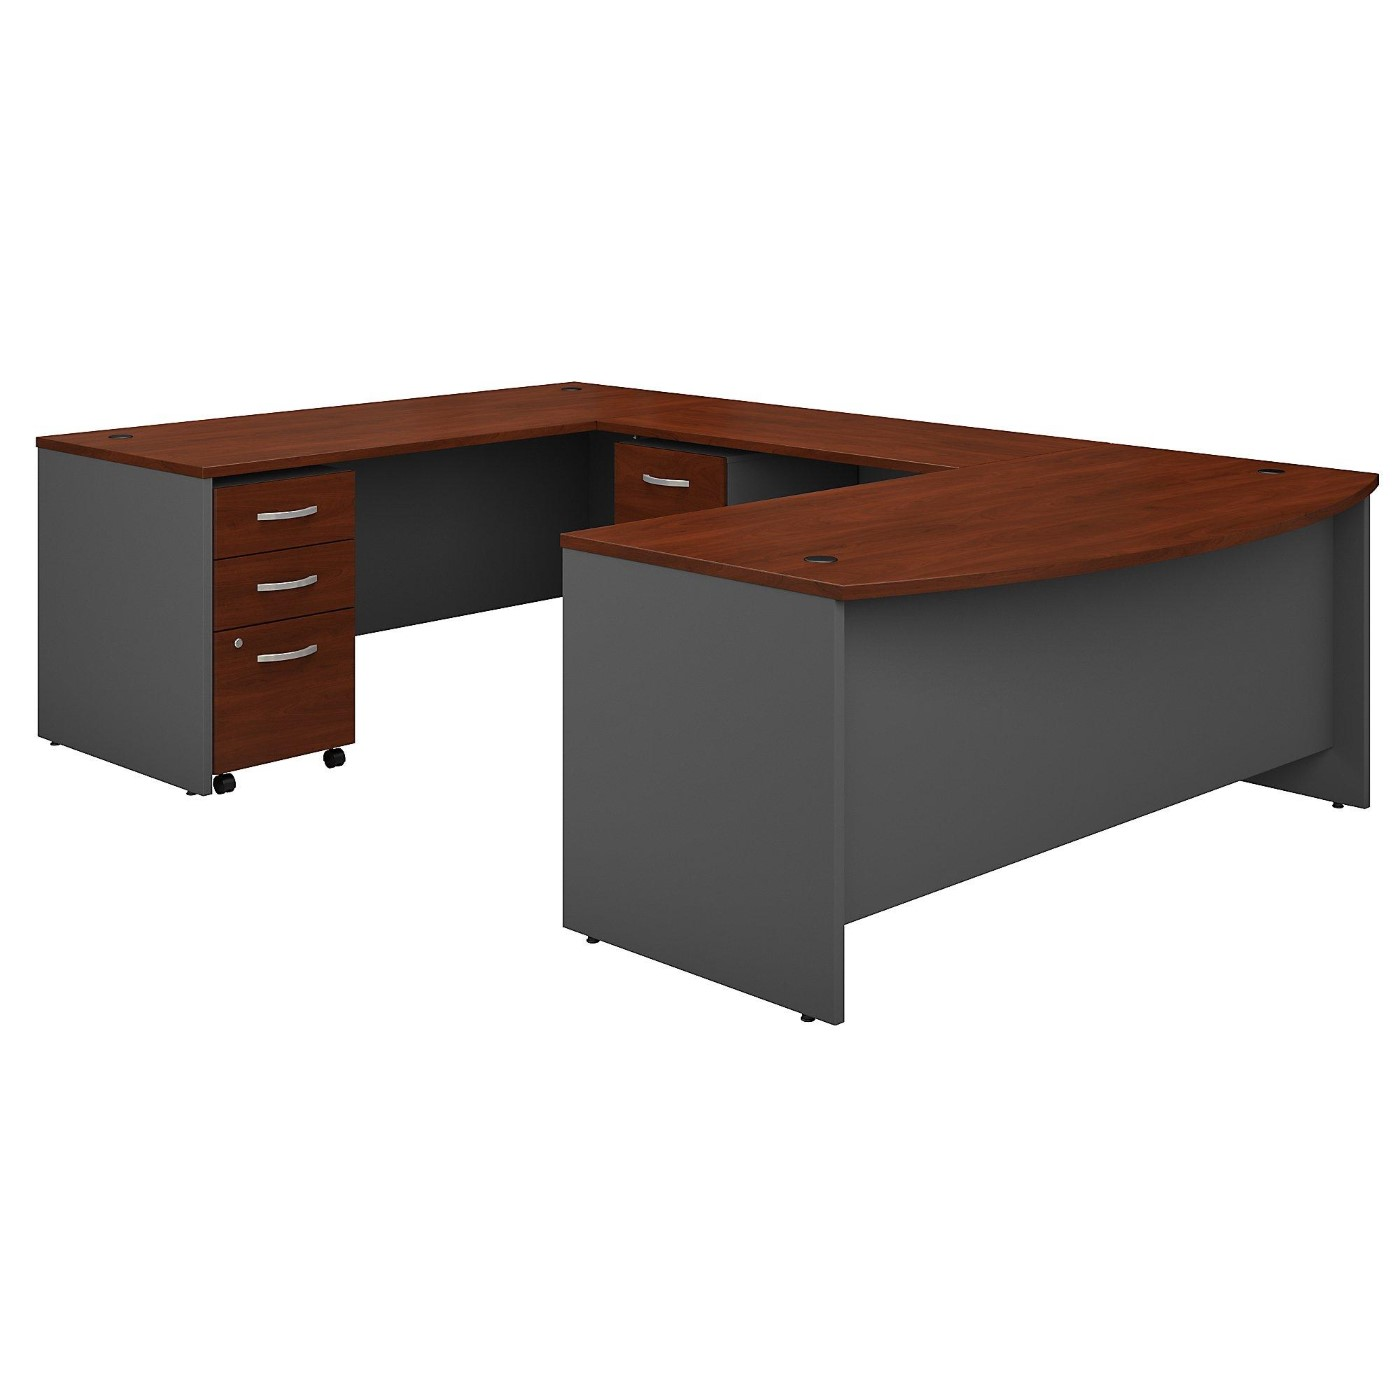 BUSH BUSINESS FURNITURE SERIES C 72W X 36D BOW FRONT U SHAPED DESK WITH MOBILE FILE CABINETS. FREE SHIPPING.  SALE DEDUCT 10% MORE ENTER '10percent' IN COUPON CODE BOX WHILE CHECKING OUT.